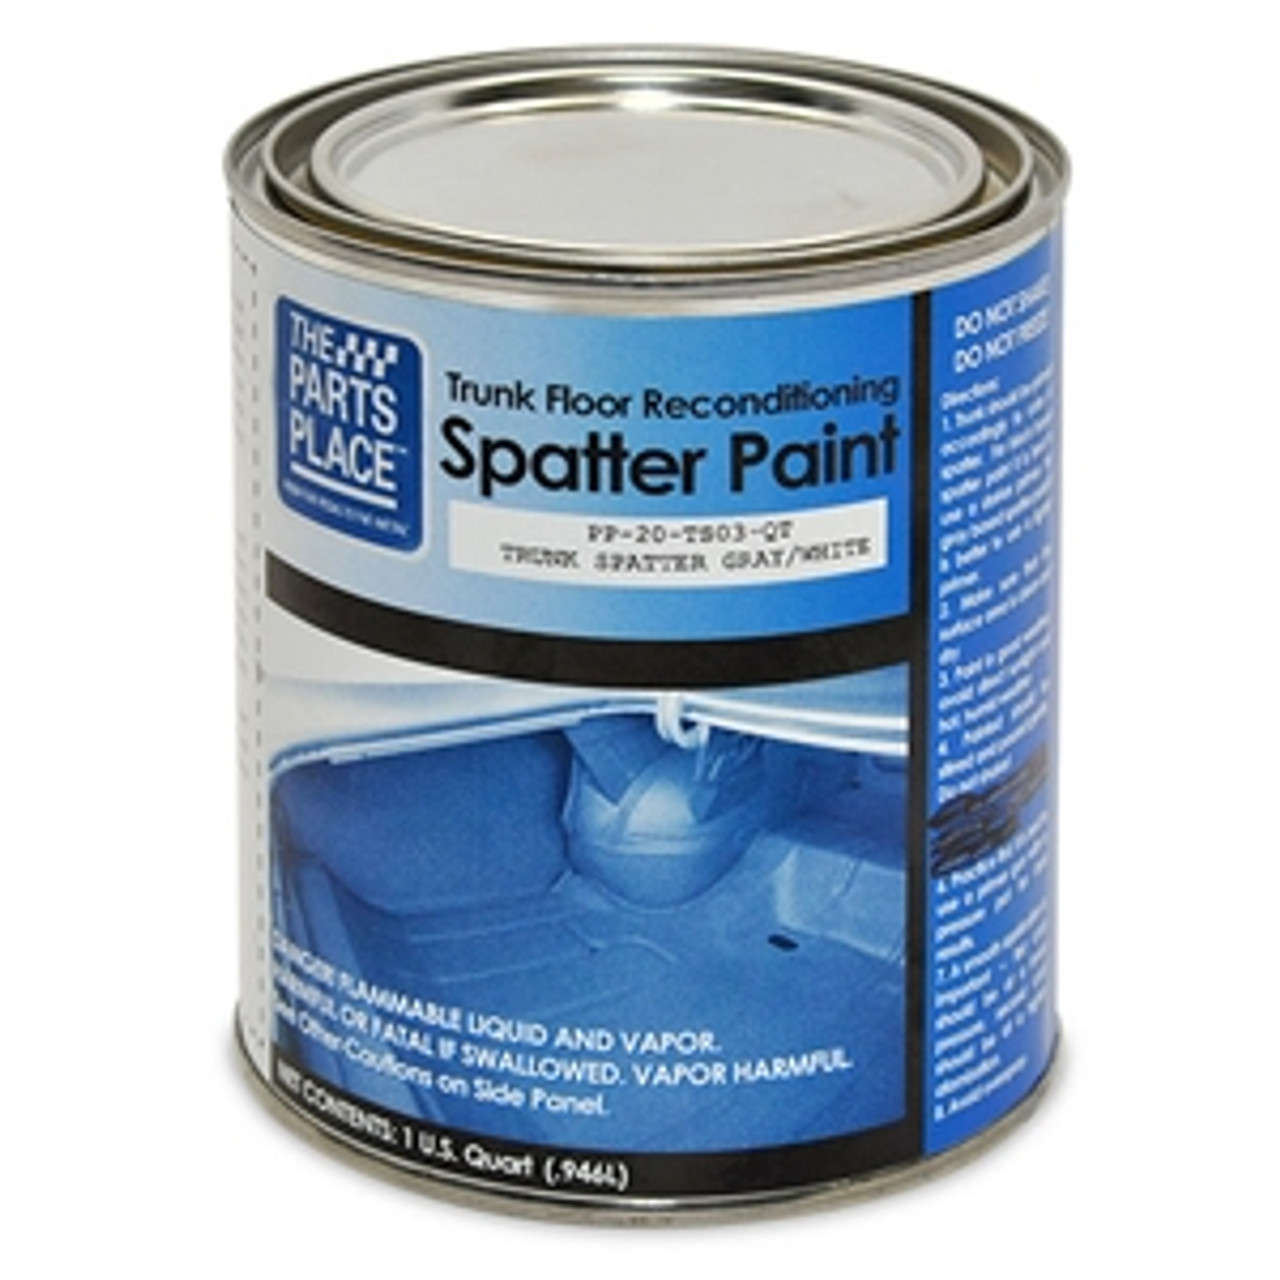 1964-66 Trunk Spatter Paint (Gray and White) (One Quart)